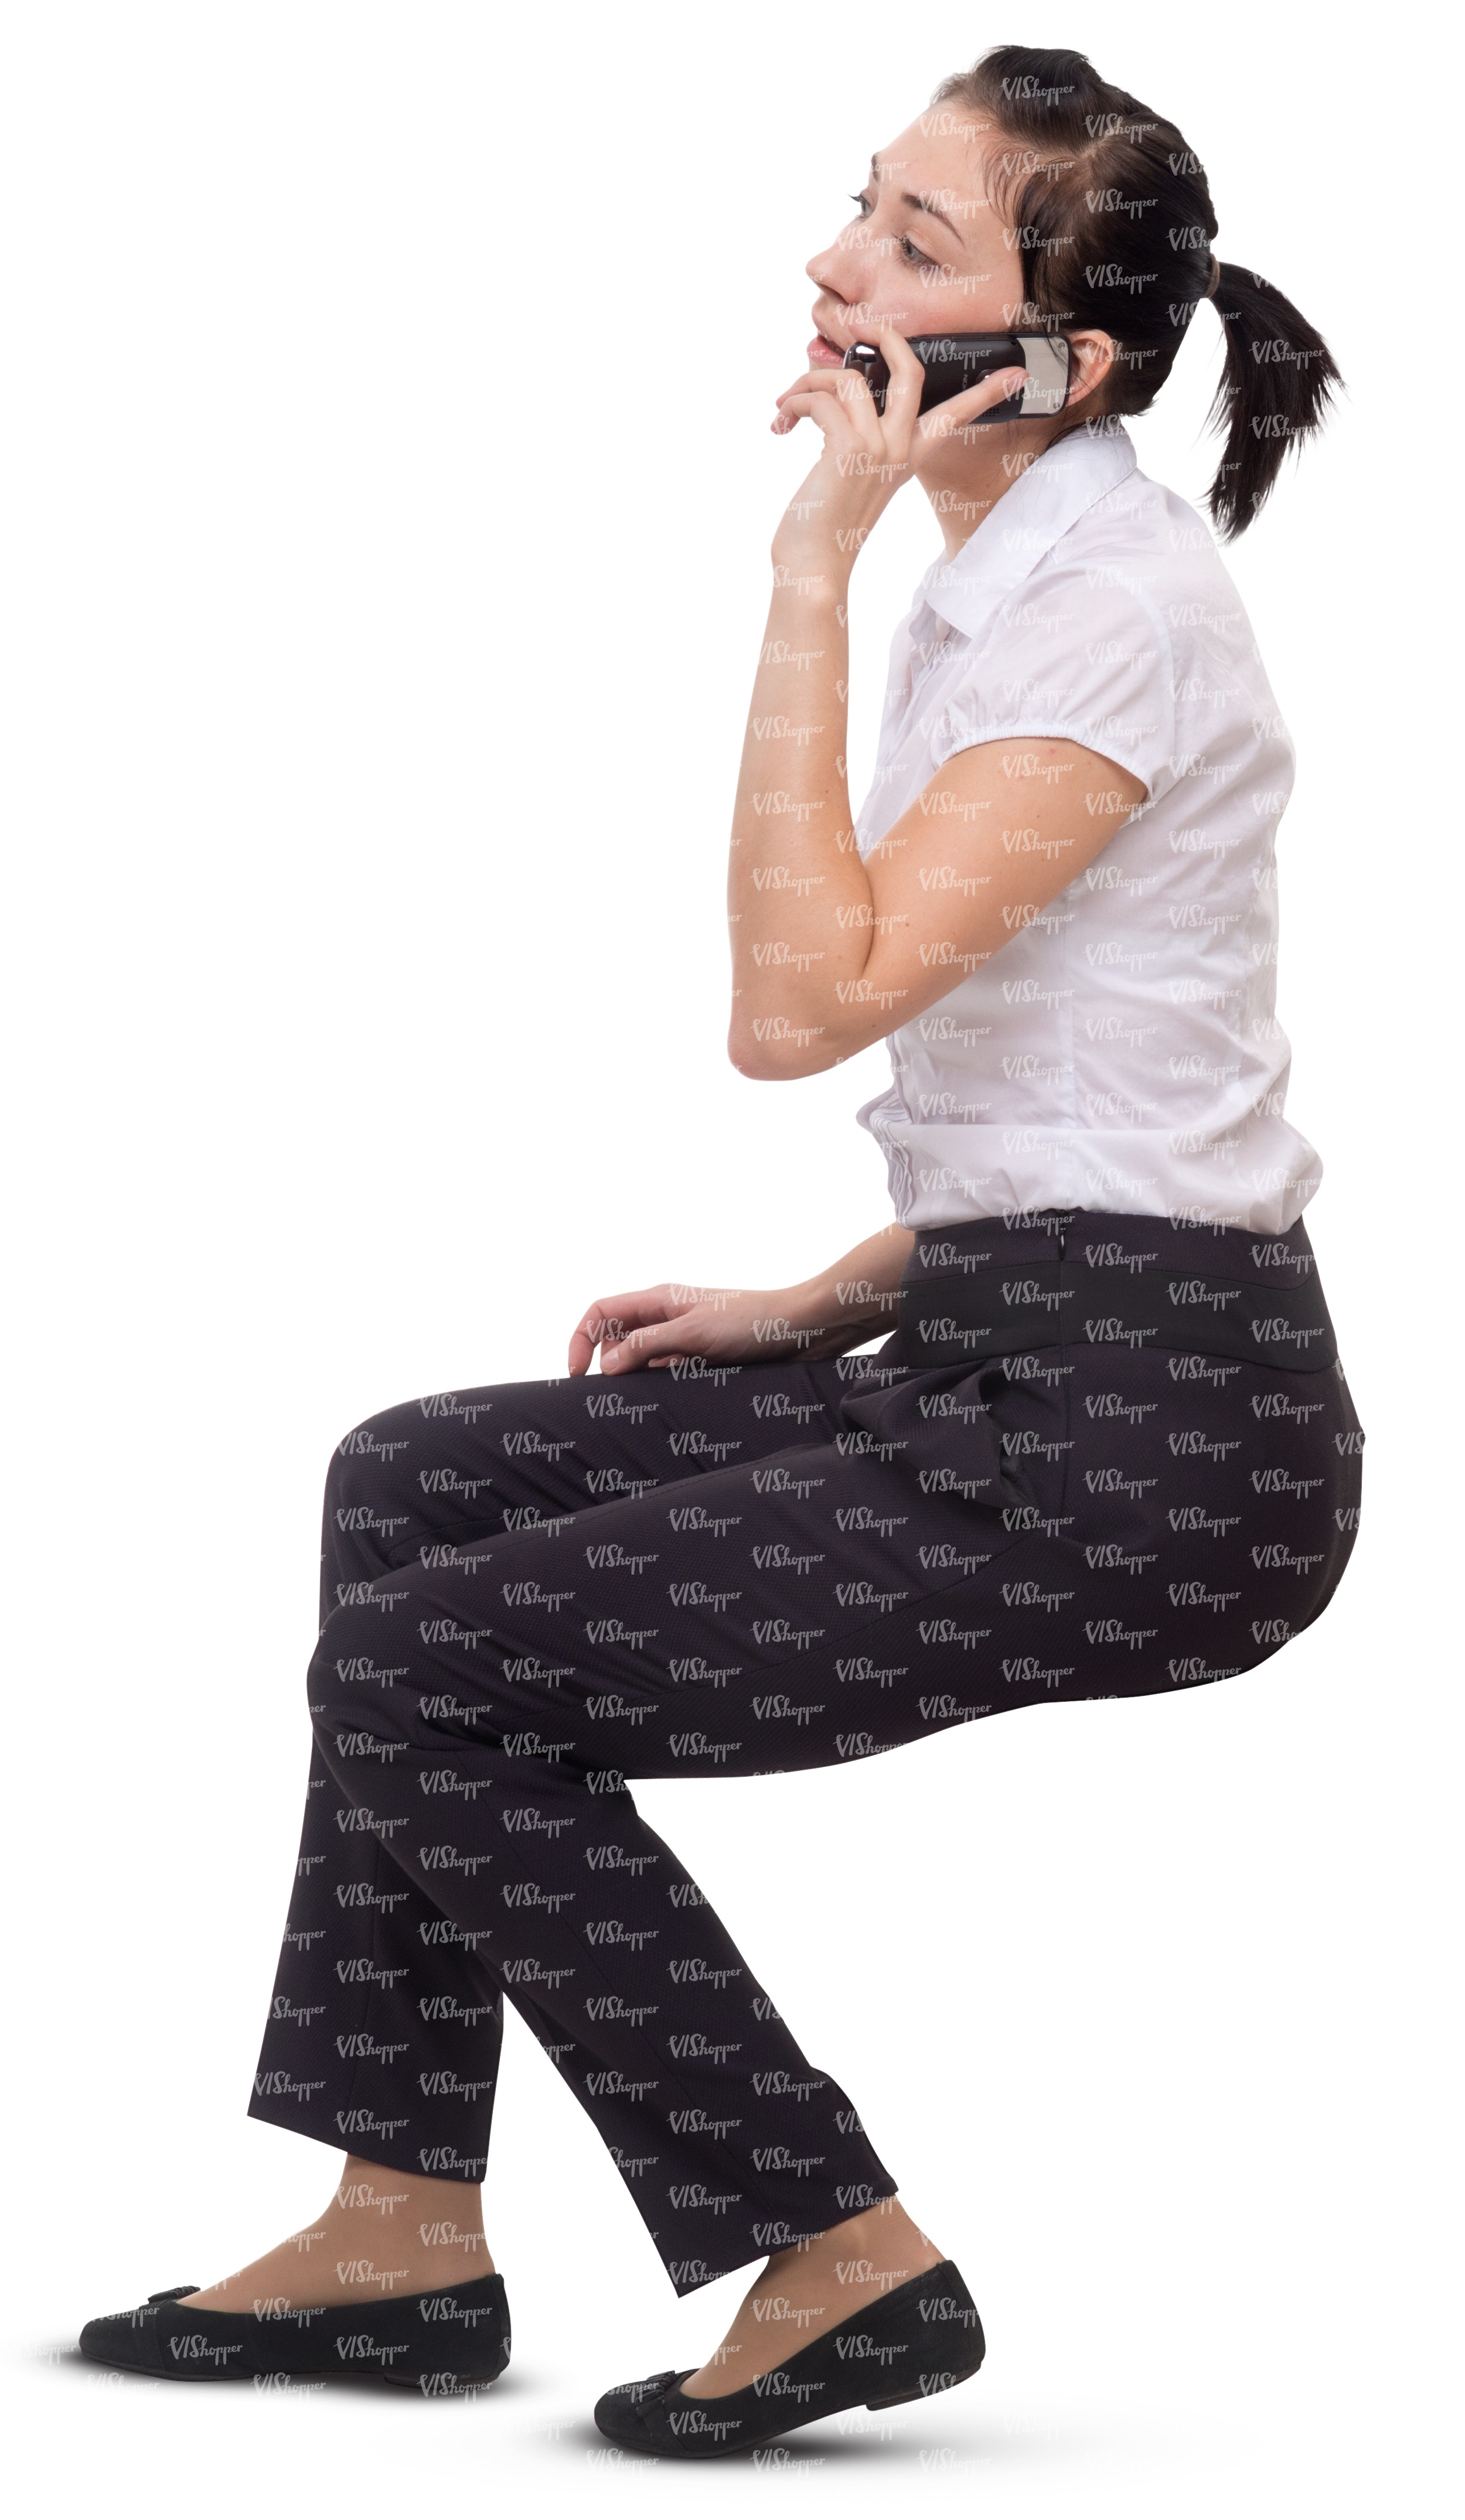 Office Worker Sitting And Talking On The Phone Cut Out